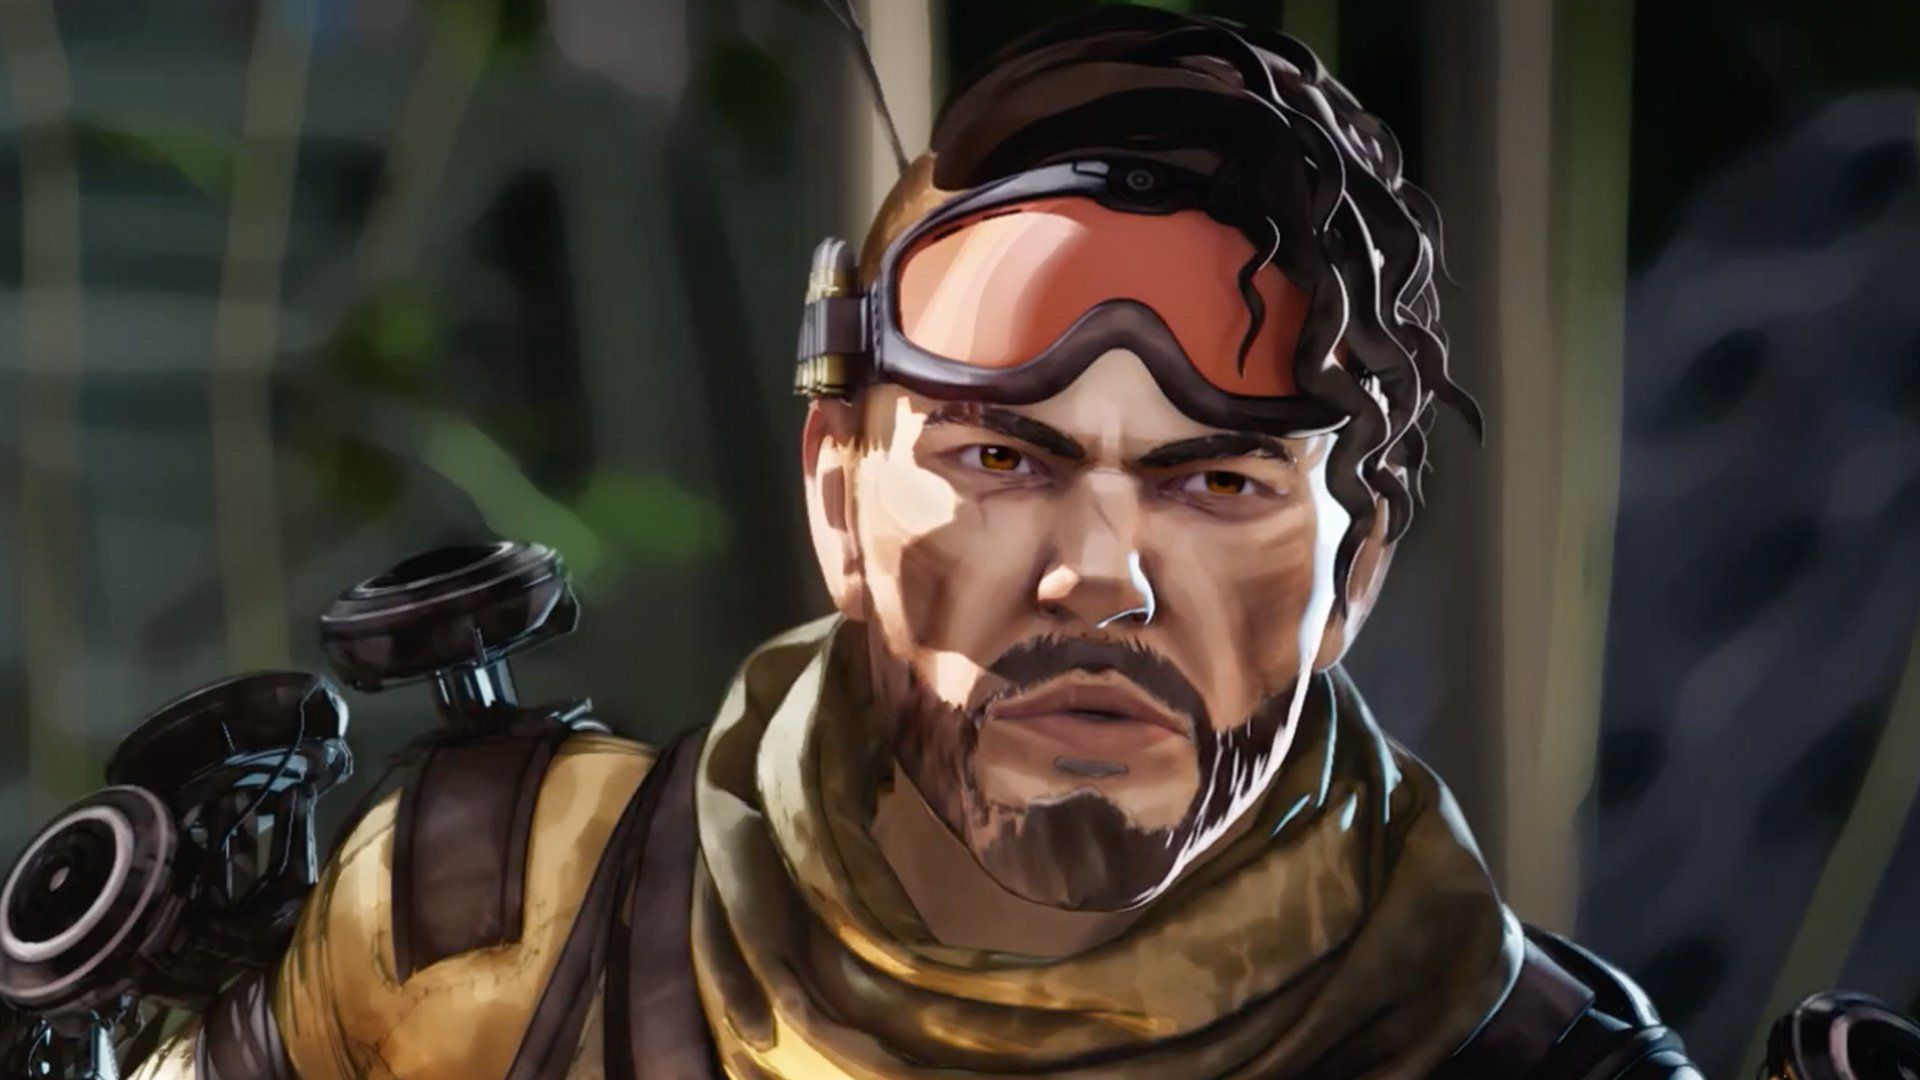 Respawn bans more than 700 high-ranked Apex Legends players